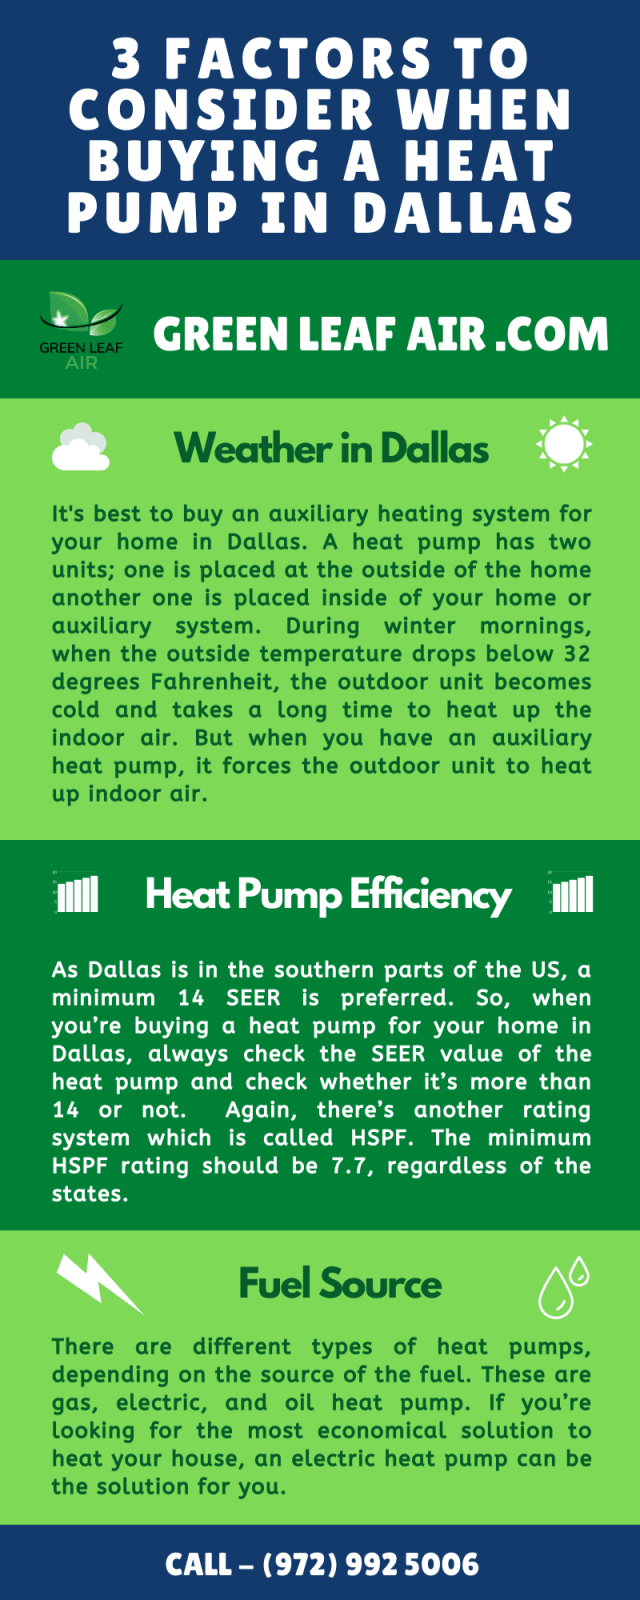 3 Factors To Consider When Buying a Heat Pump in Dallas